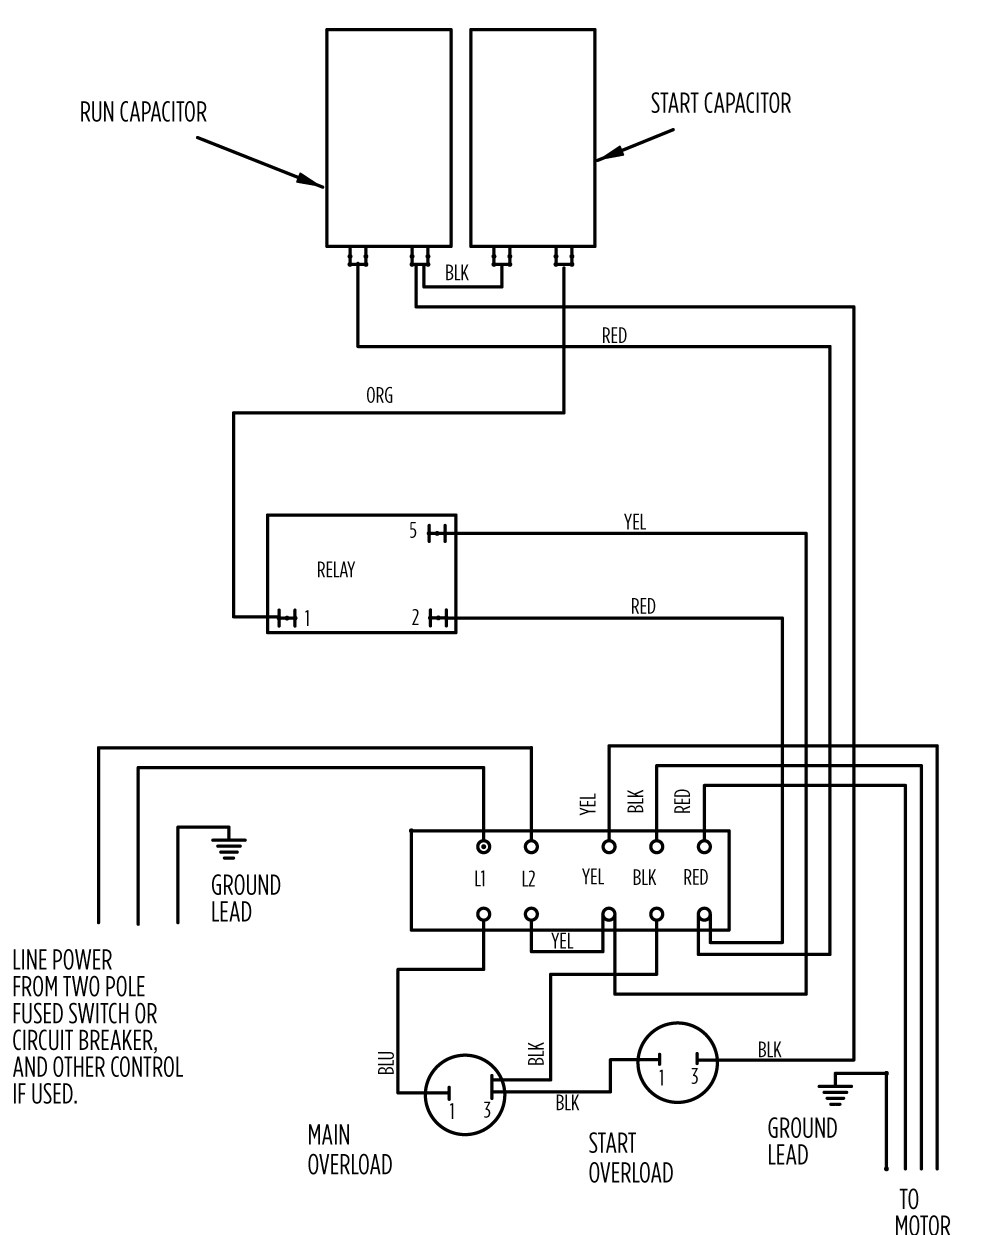 hight resolution of pump motor wiring diagrams lincoln guide about wiring diagram lincoln electric motor wiring diagram lincoln motor wiring diagram